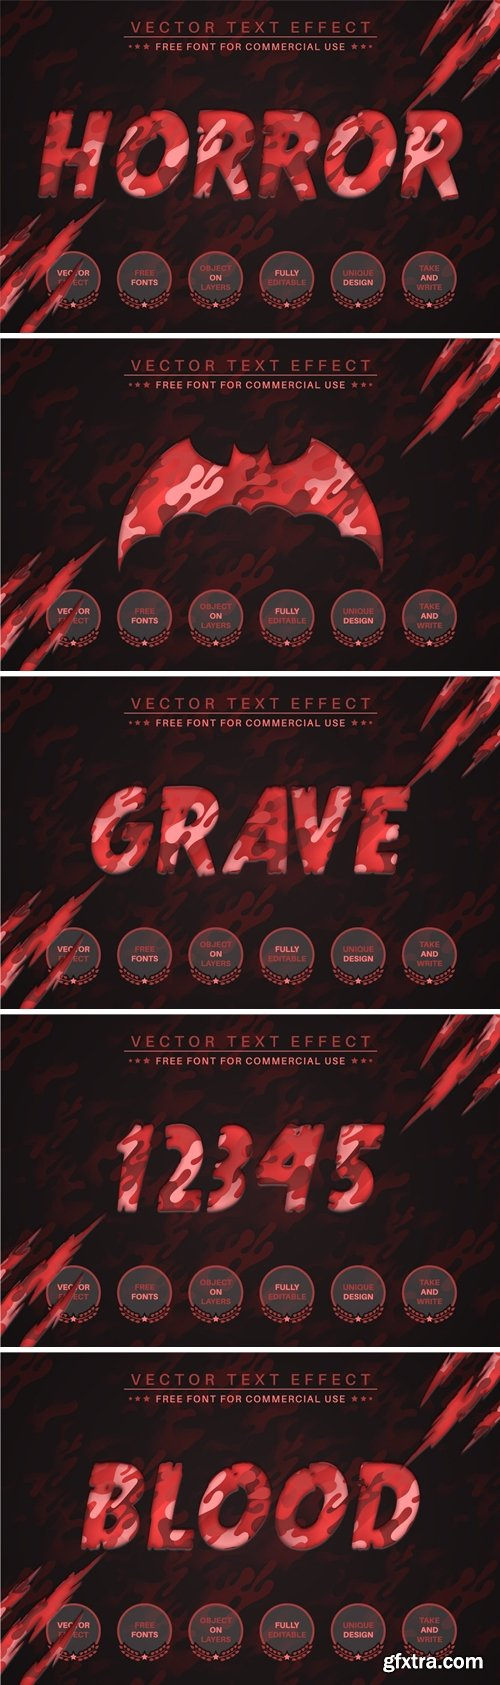 Blood Paper - Editable Text Effect, Font Style